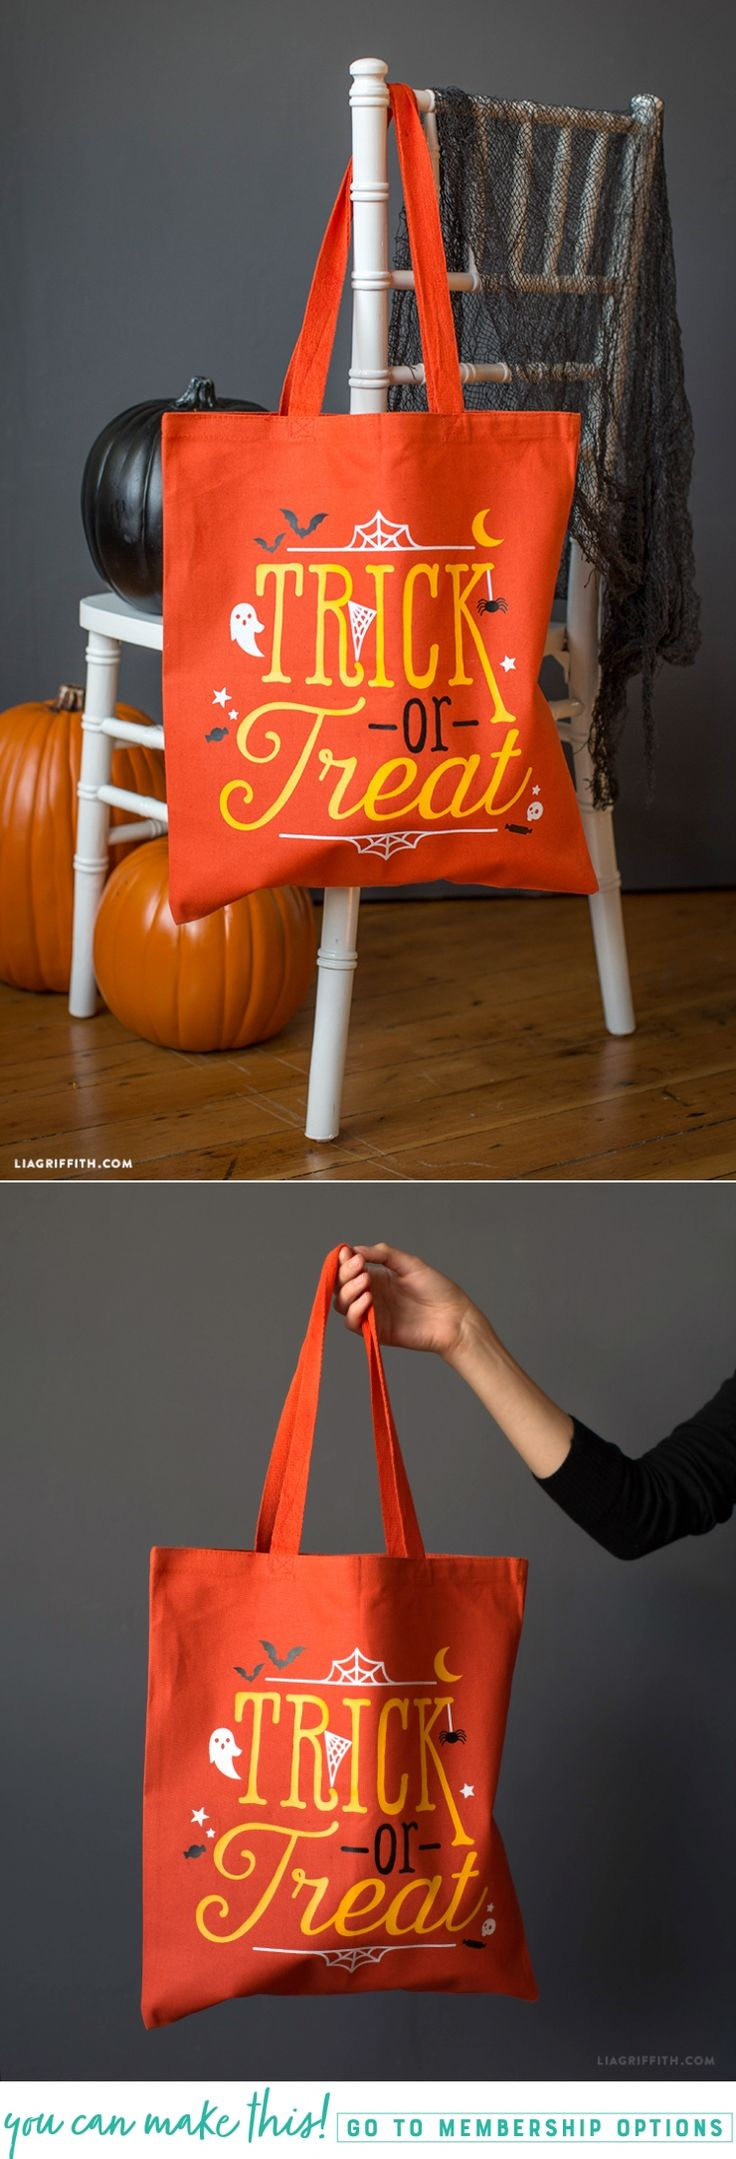 Halloween Tote Bag Iron-On - Lia Griffith - www.liagriffith.com #diyinspiration #diyidea #diyideas #diyproject #diyprojects #totebag #trickortreat #diyhalloween #madewithlia